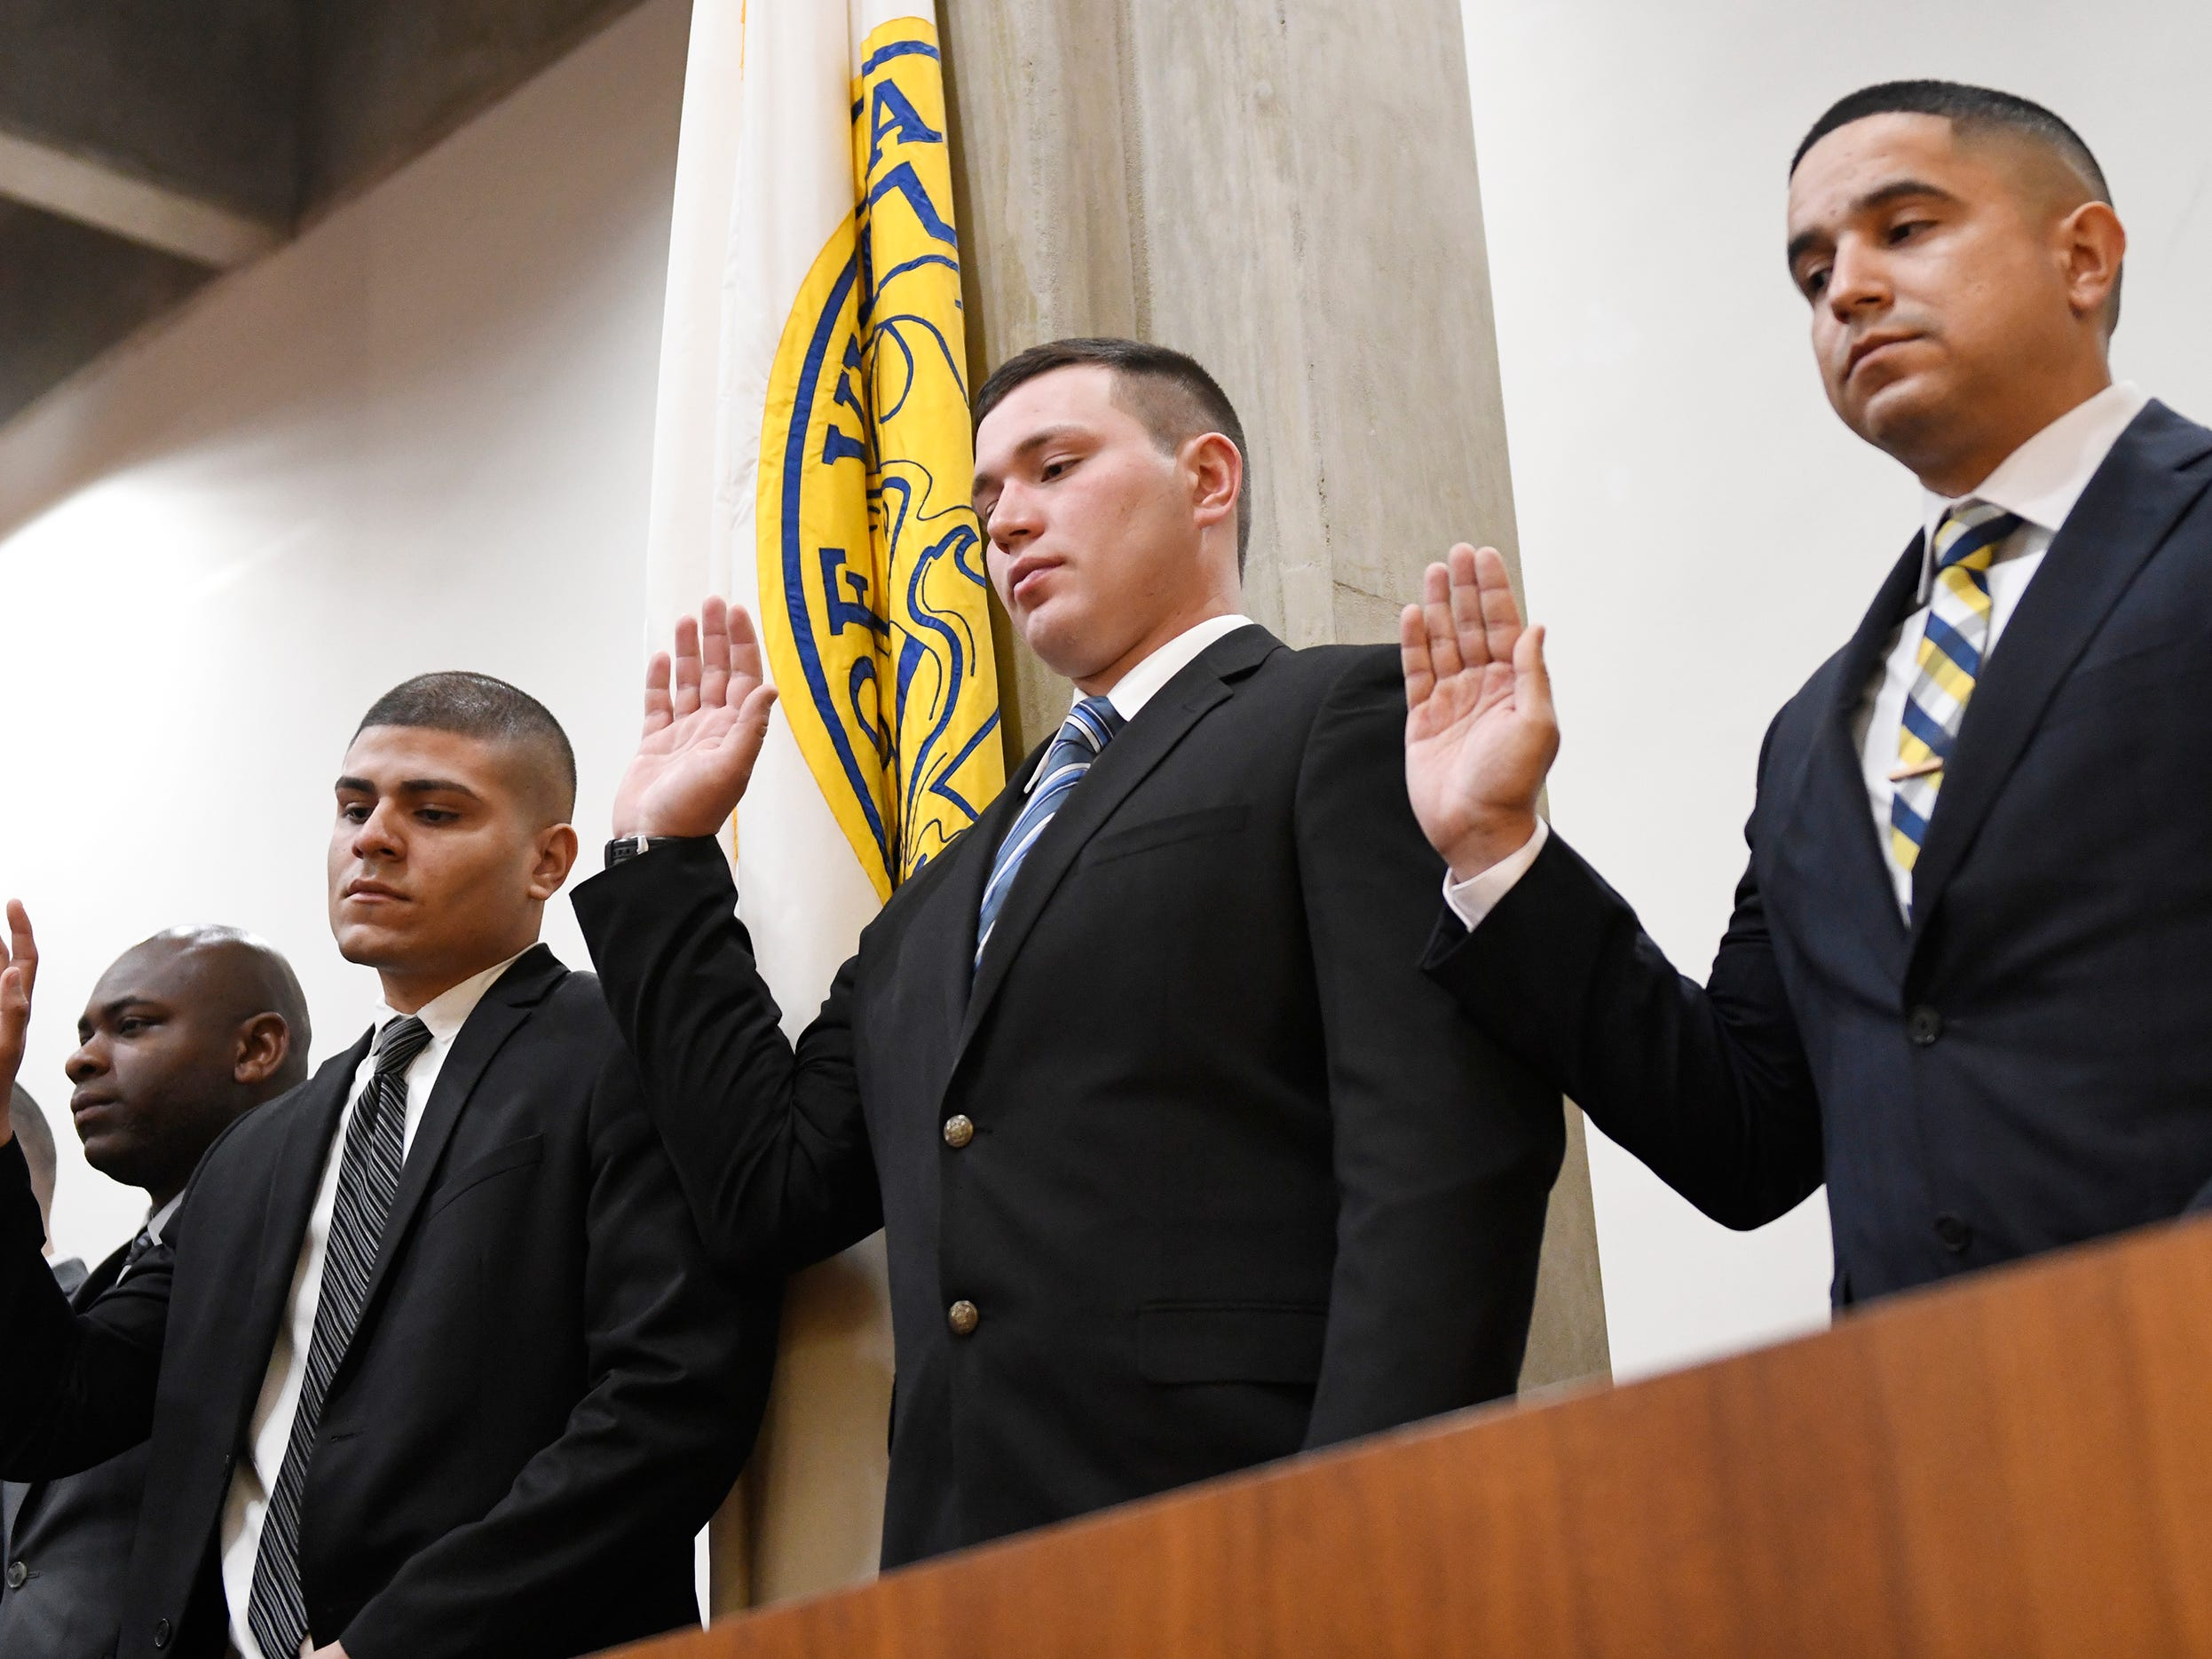 Mayor Anthony Fanucci swore in eight police officers at Vineland City Hall on Wednesday, Feb.27, 2019. (From l to r) Pictured here are Teyson M. Mayes, Isaiah Rosa, Christopher Yuhas and Edmanuel Vega.